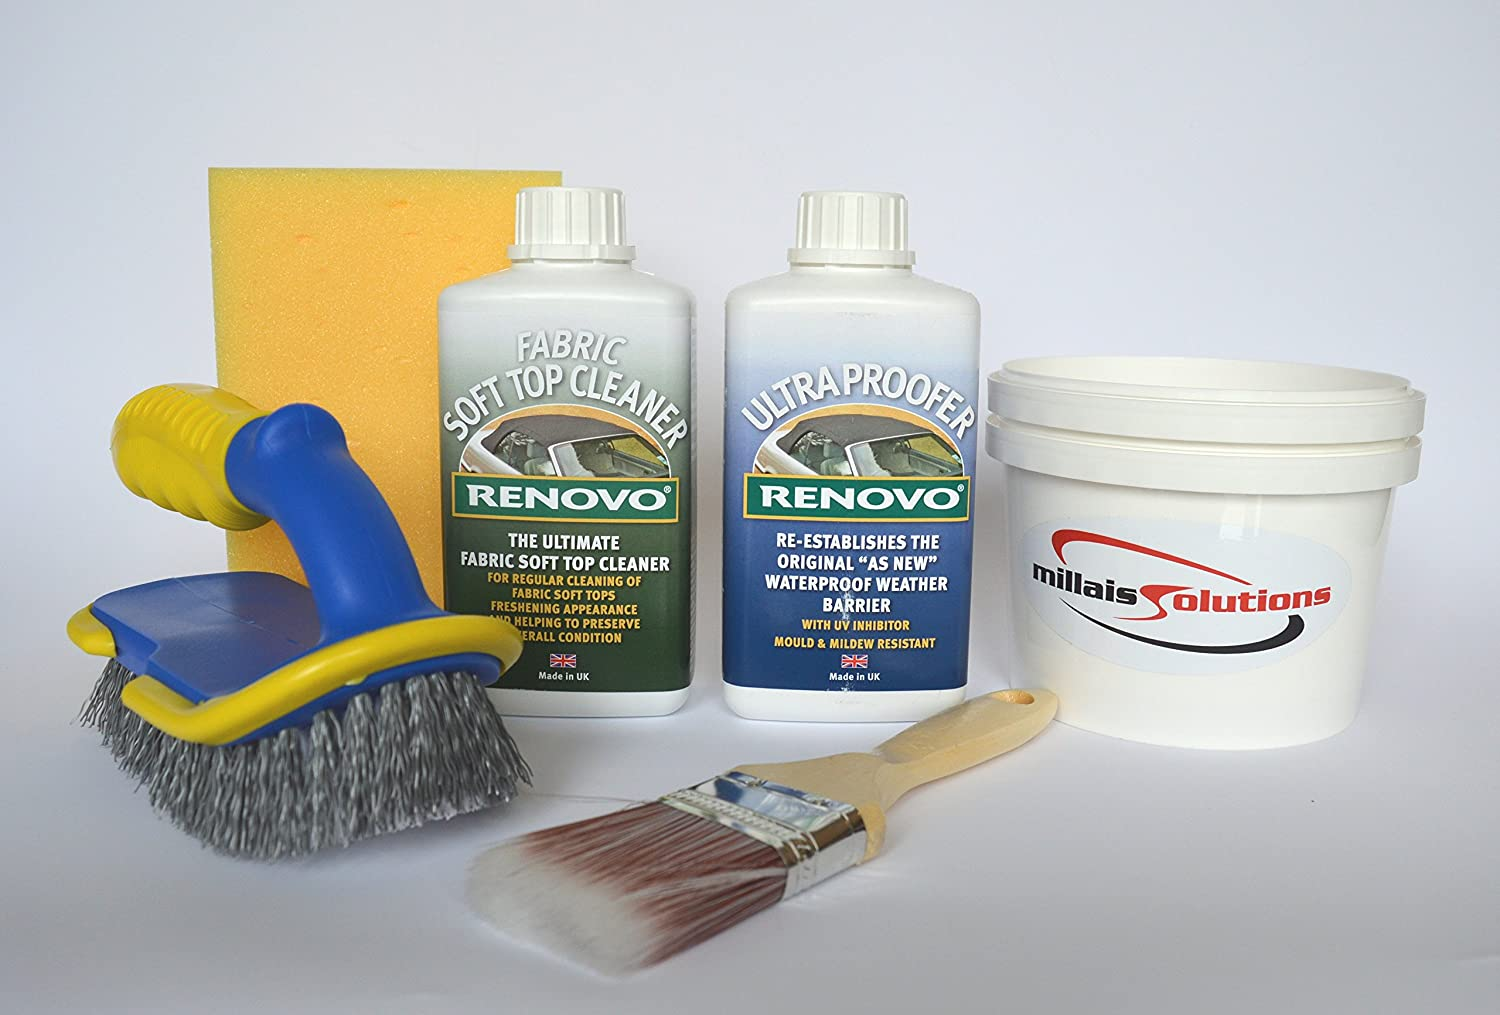 Renovo Convertible Hood/Soft Top Cleaner and Ultra Proofer Complete Kit with brushes etc by Millaissolutions Ltd